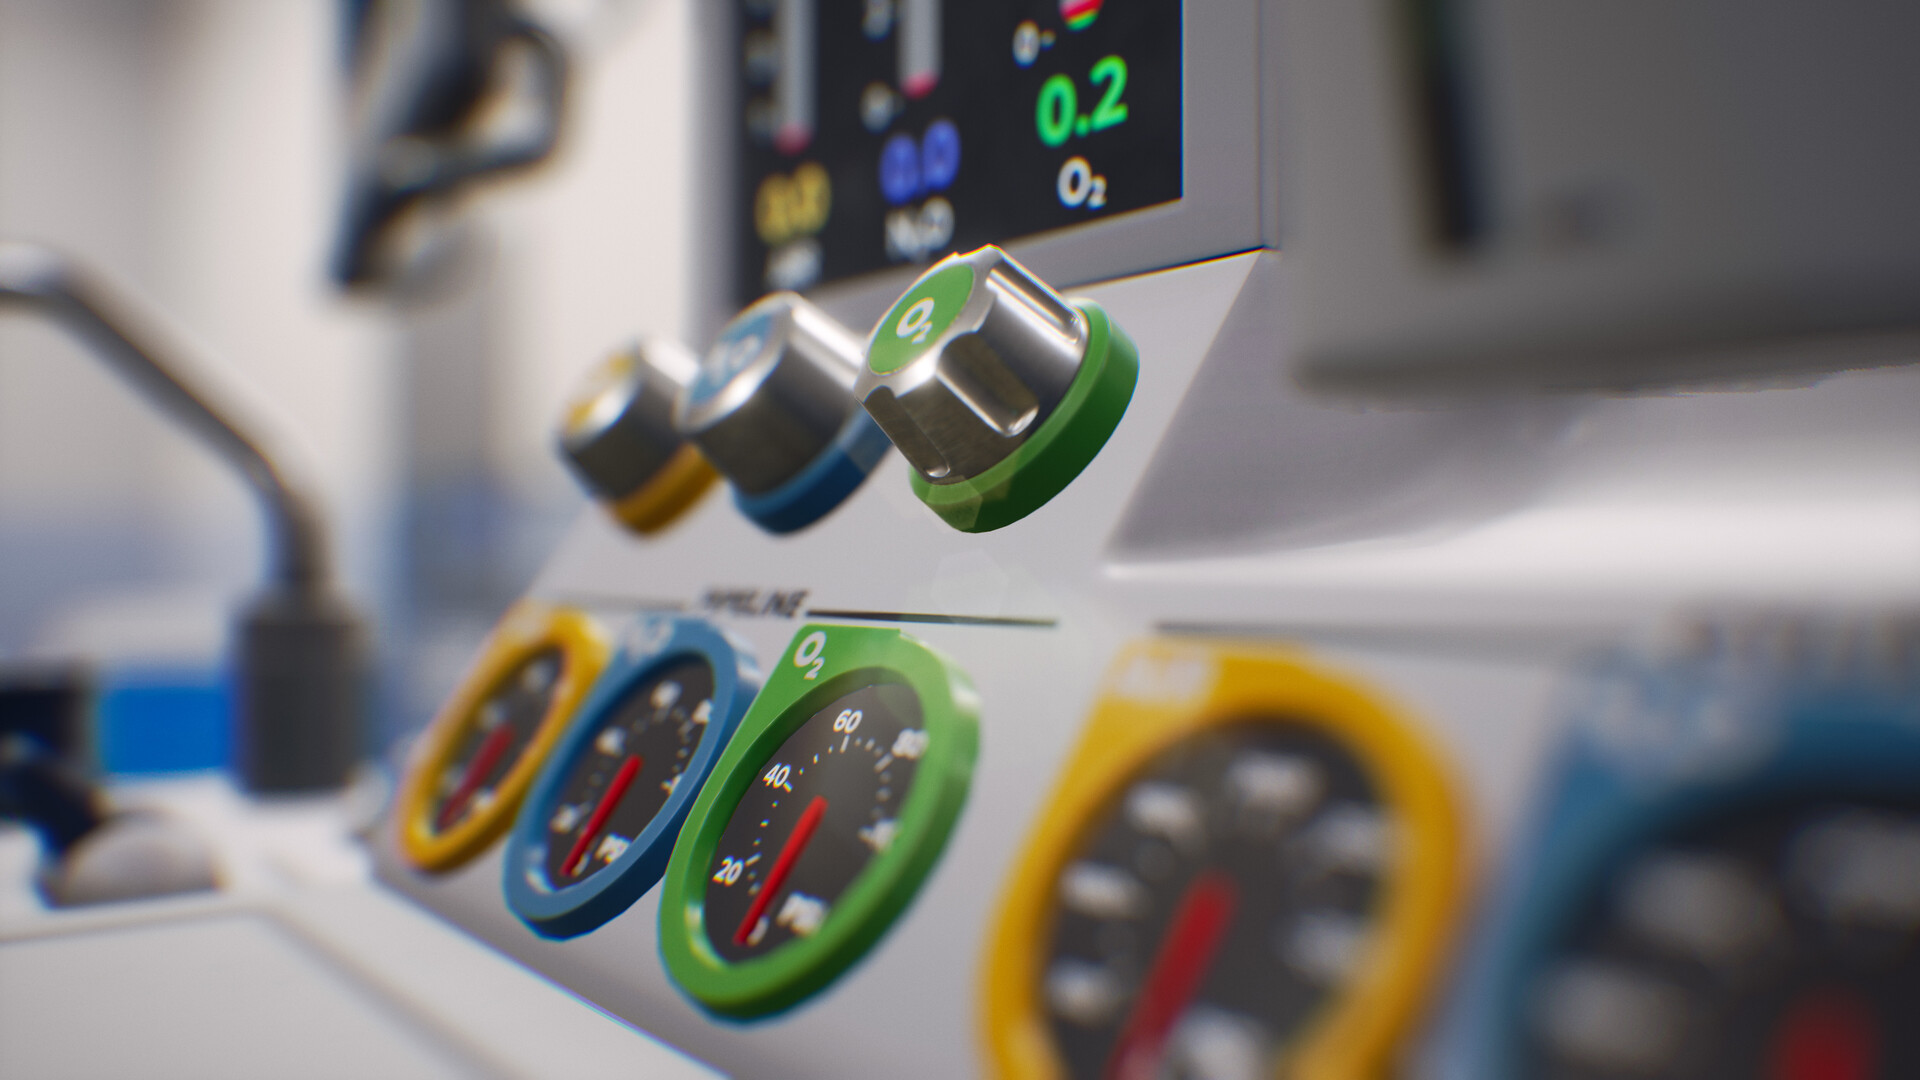 The anesthesia machine was designed from scratch to allow for better usability with VR controllers. I was responsible for concepting the machine so it would be easy to use in VR.